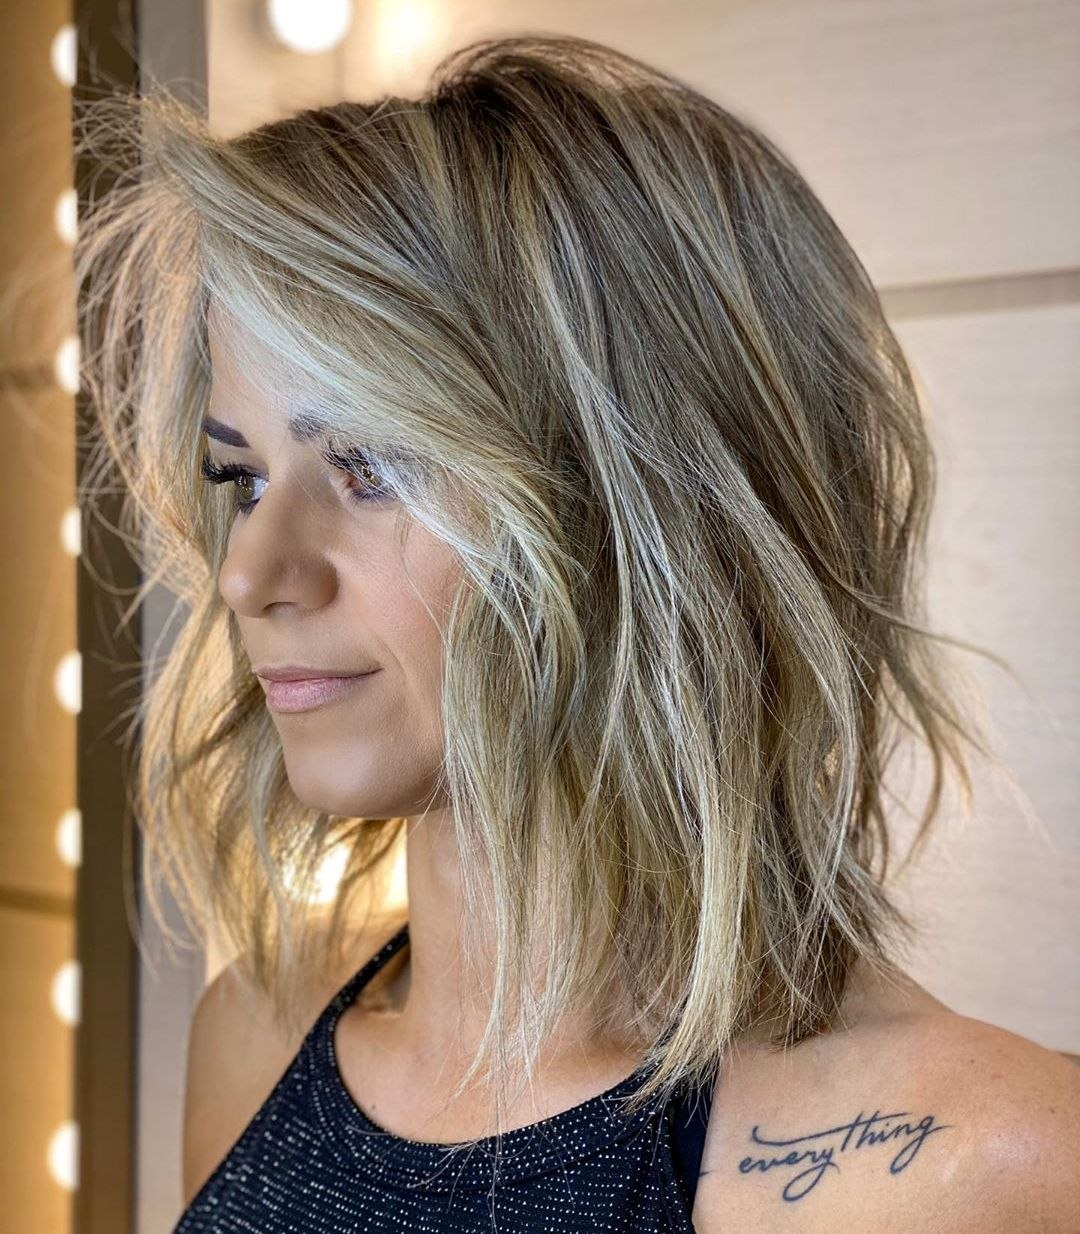 Popular Hairstyles for Women Best Of 40 Newest Haircuts for Women and Hair Trends for 2021 - Hair Adviser